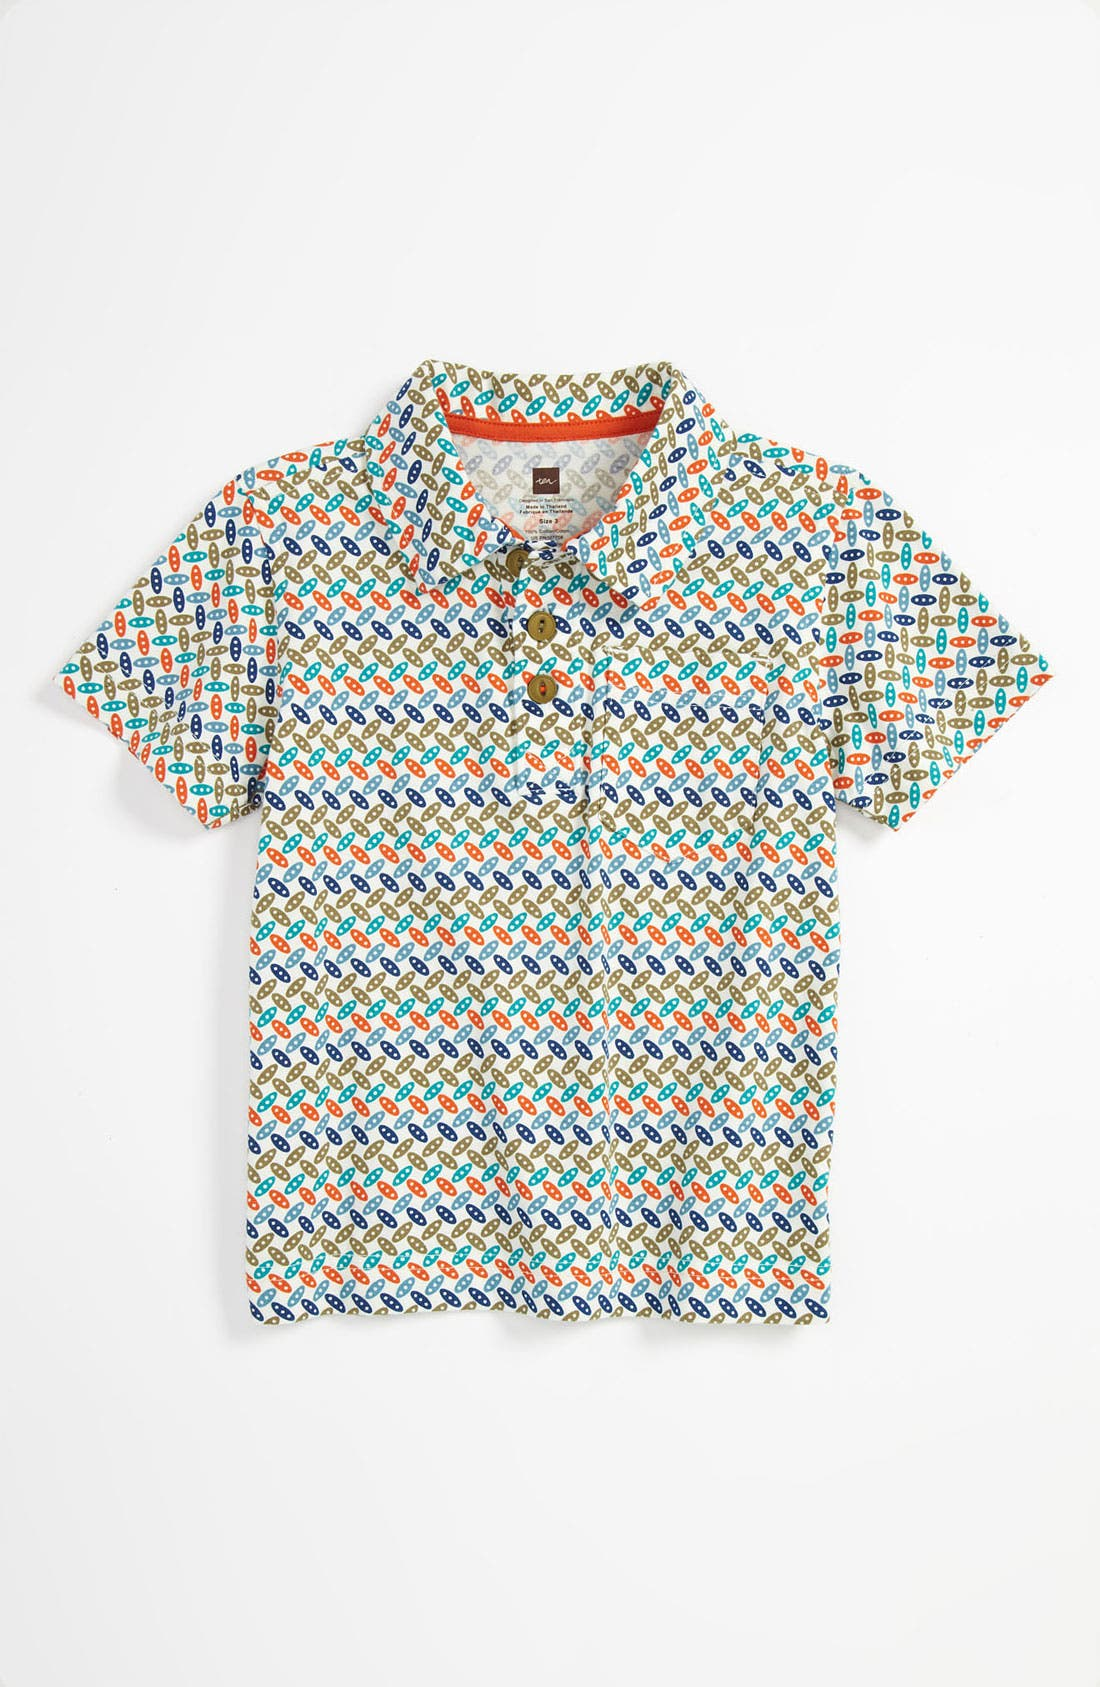 Alternate Image 1 Selected - Tea Collection Print Shirt (Baby)